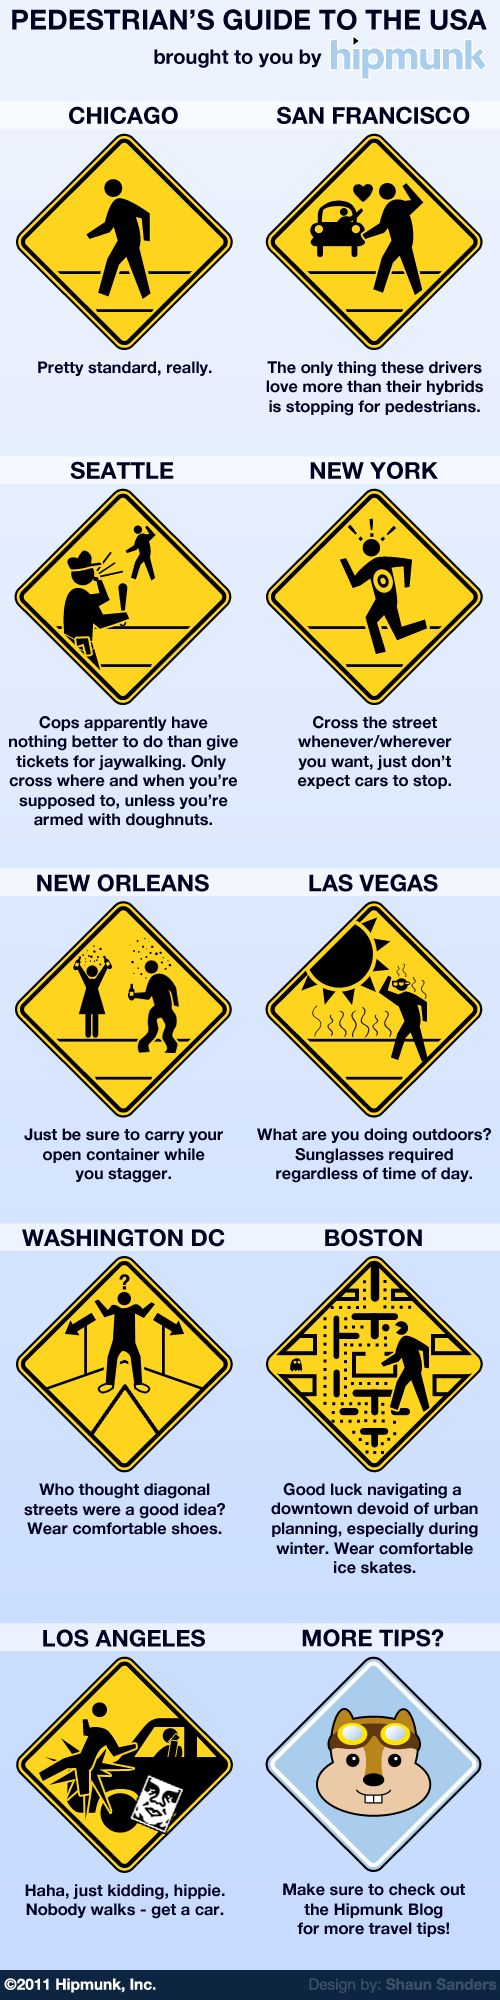 A fun #infographic from the folks at Hipmunk, showing how pedestrians and drivers get along in various cities around the US.